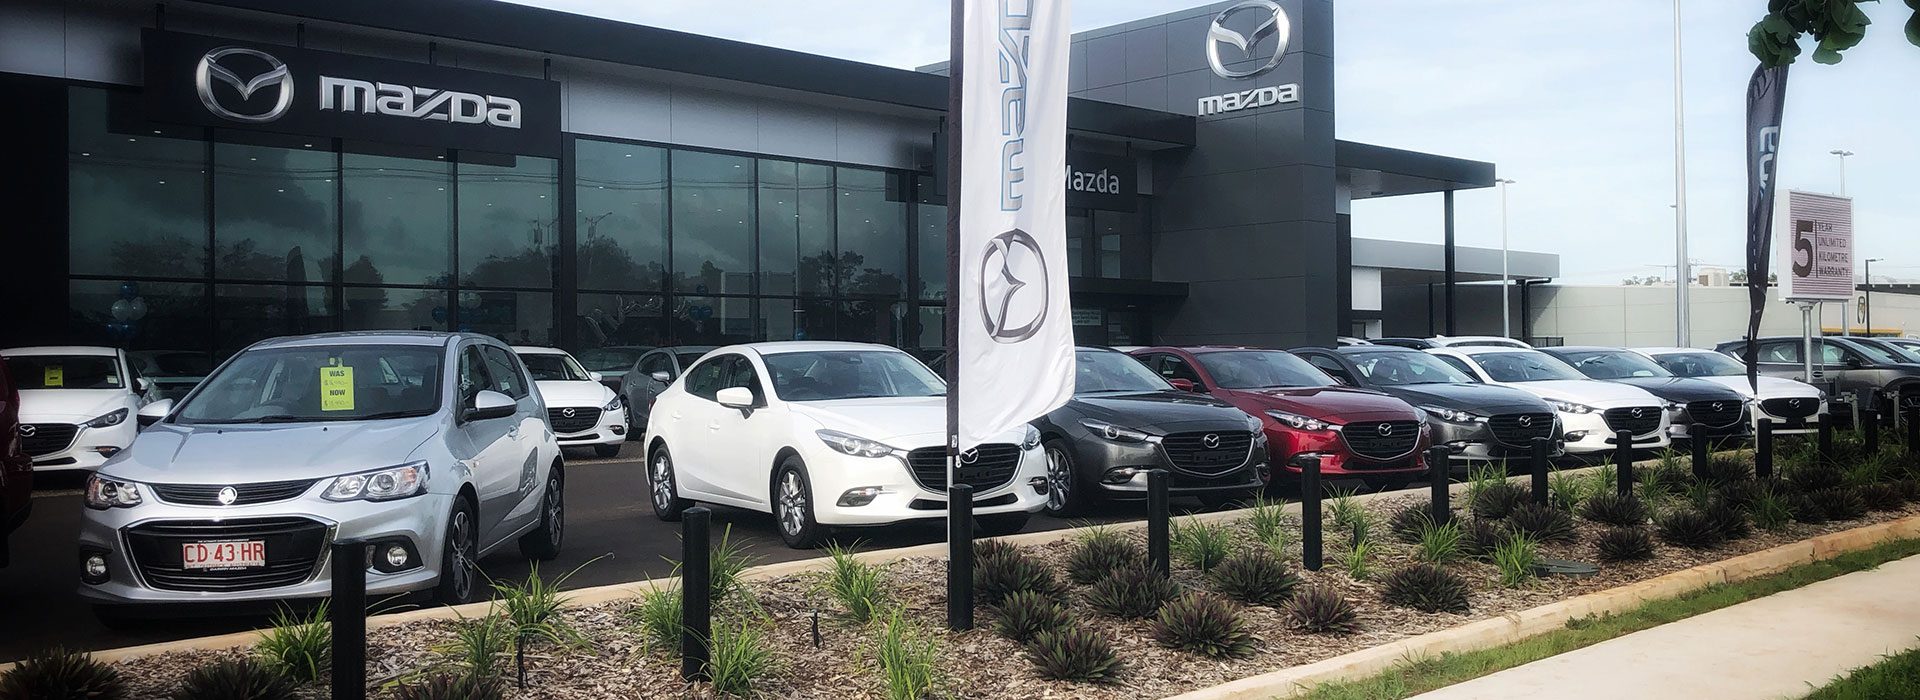 bespoke-mazda-facility-launch-1